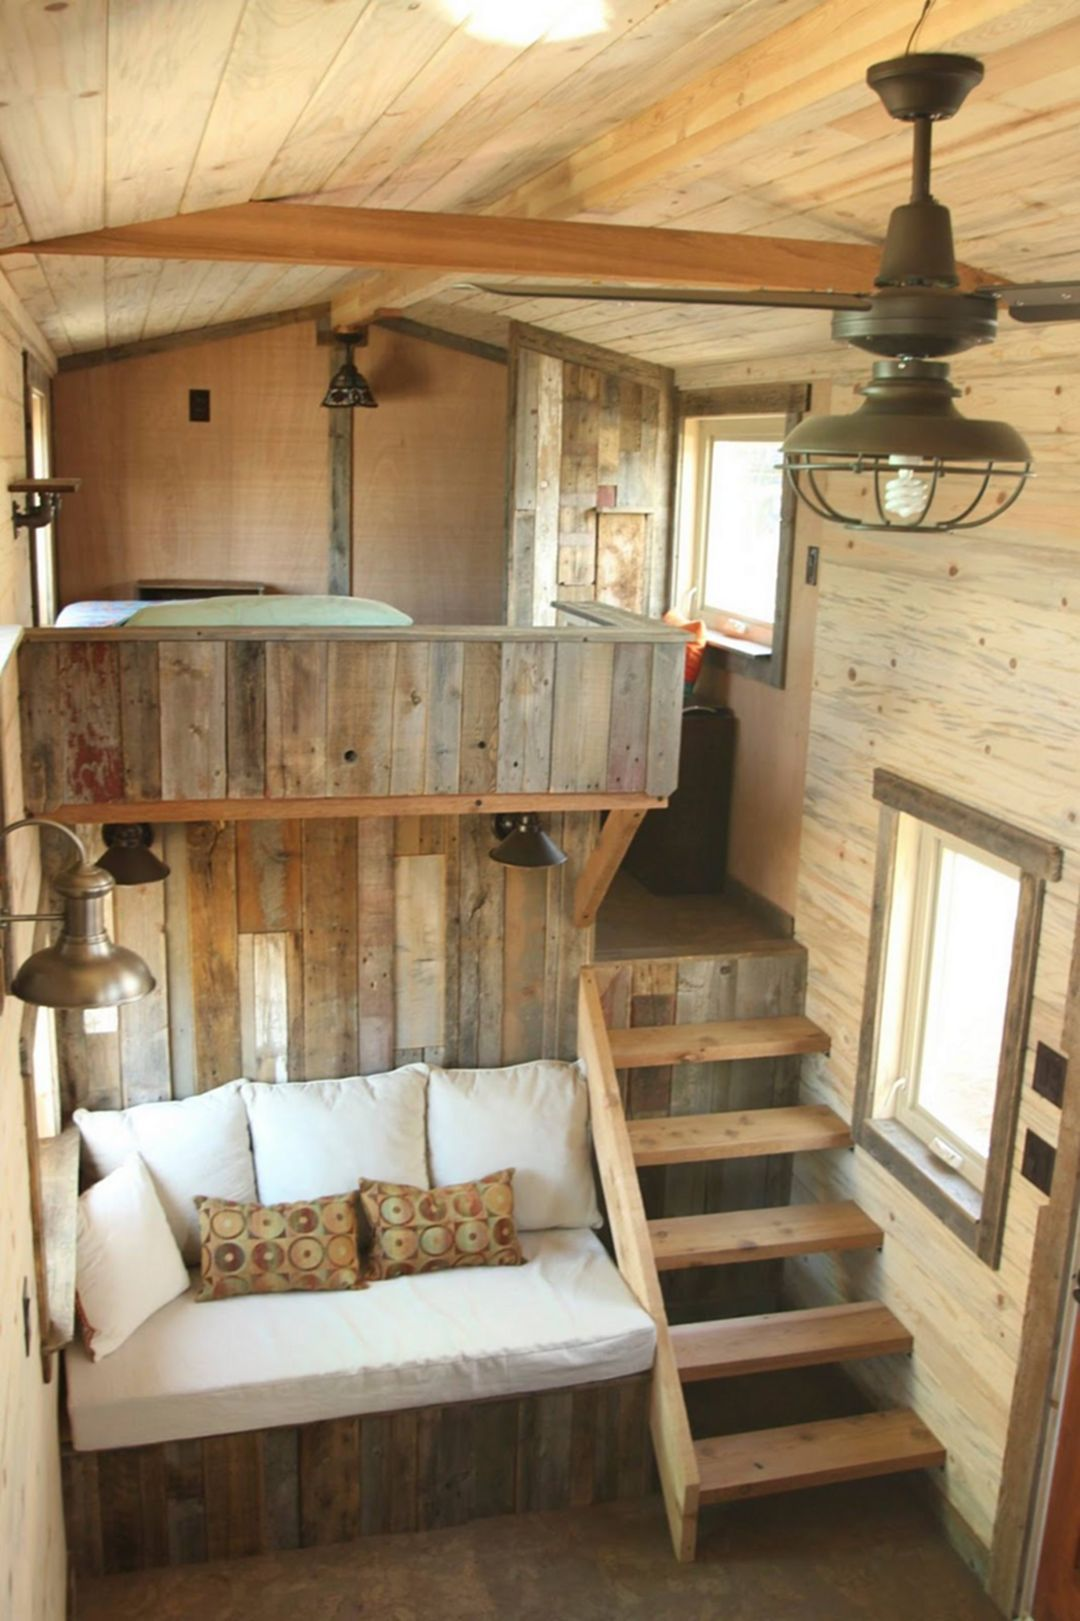 Wonderful tiny house design ideas  goodsgn also houses pinterest rh